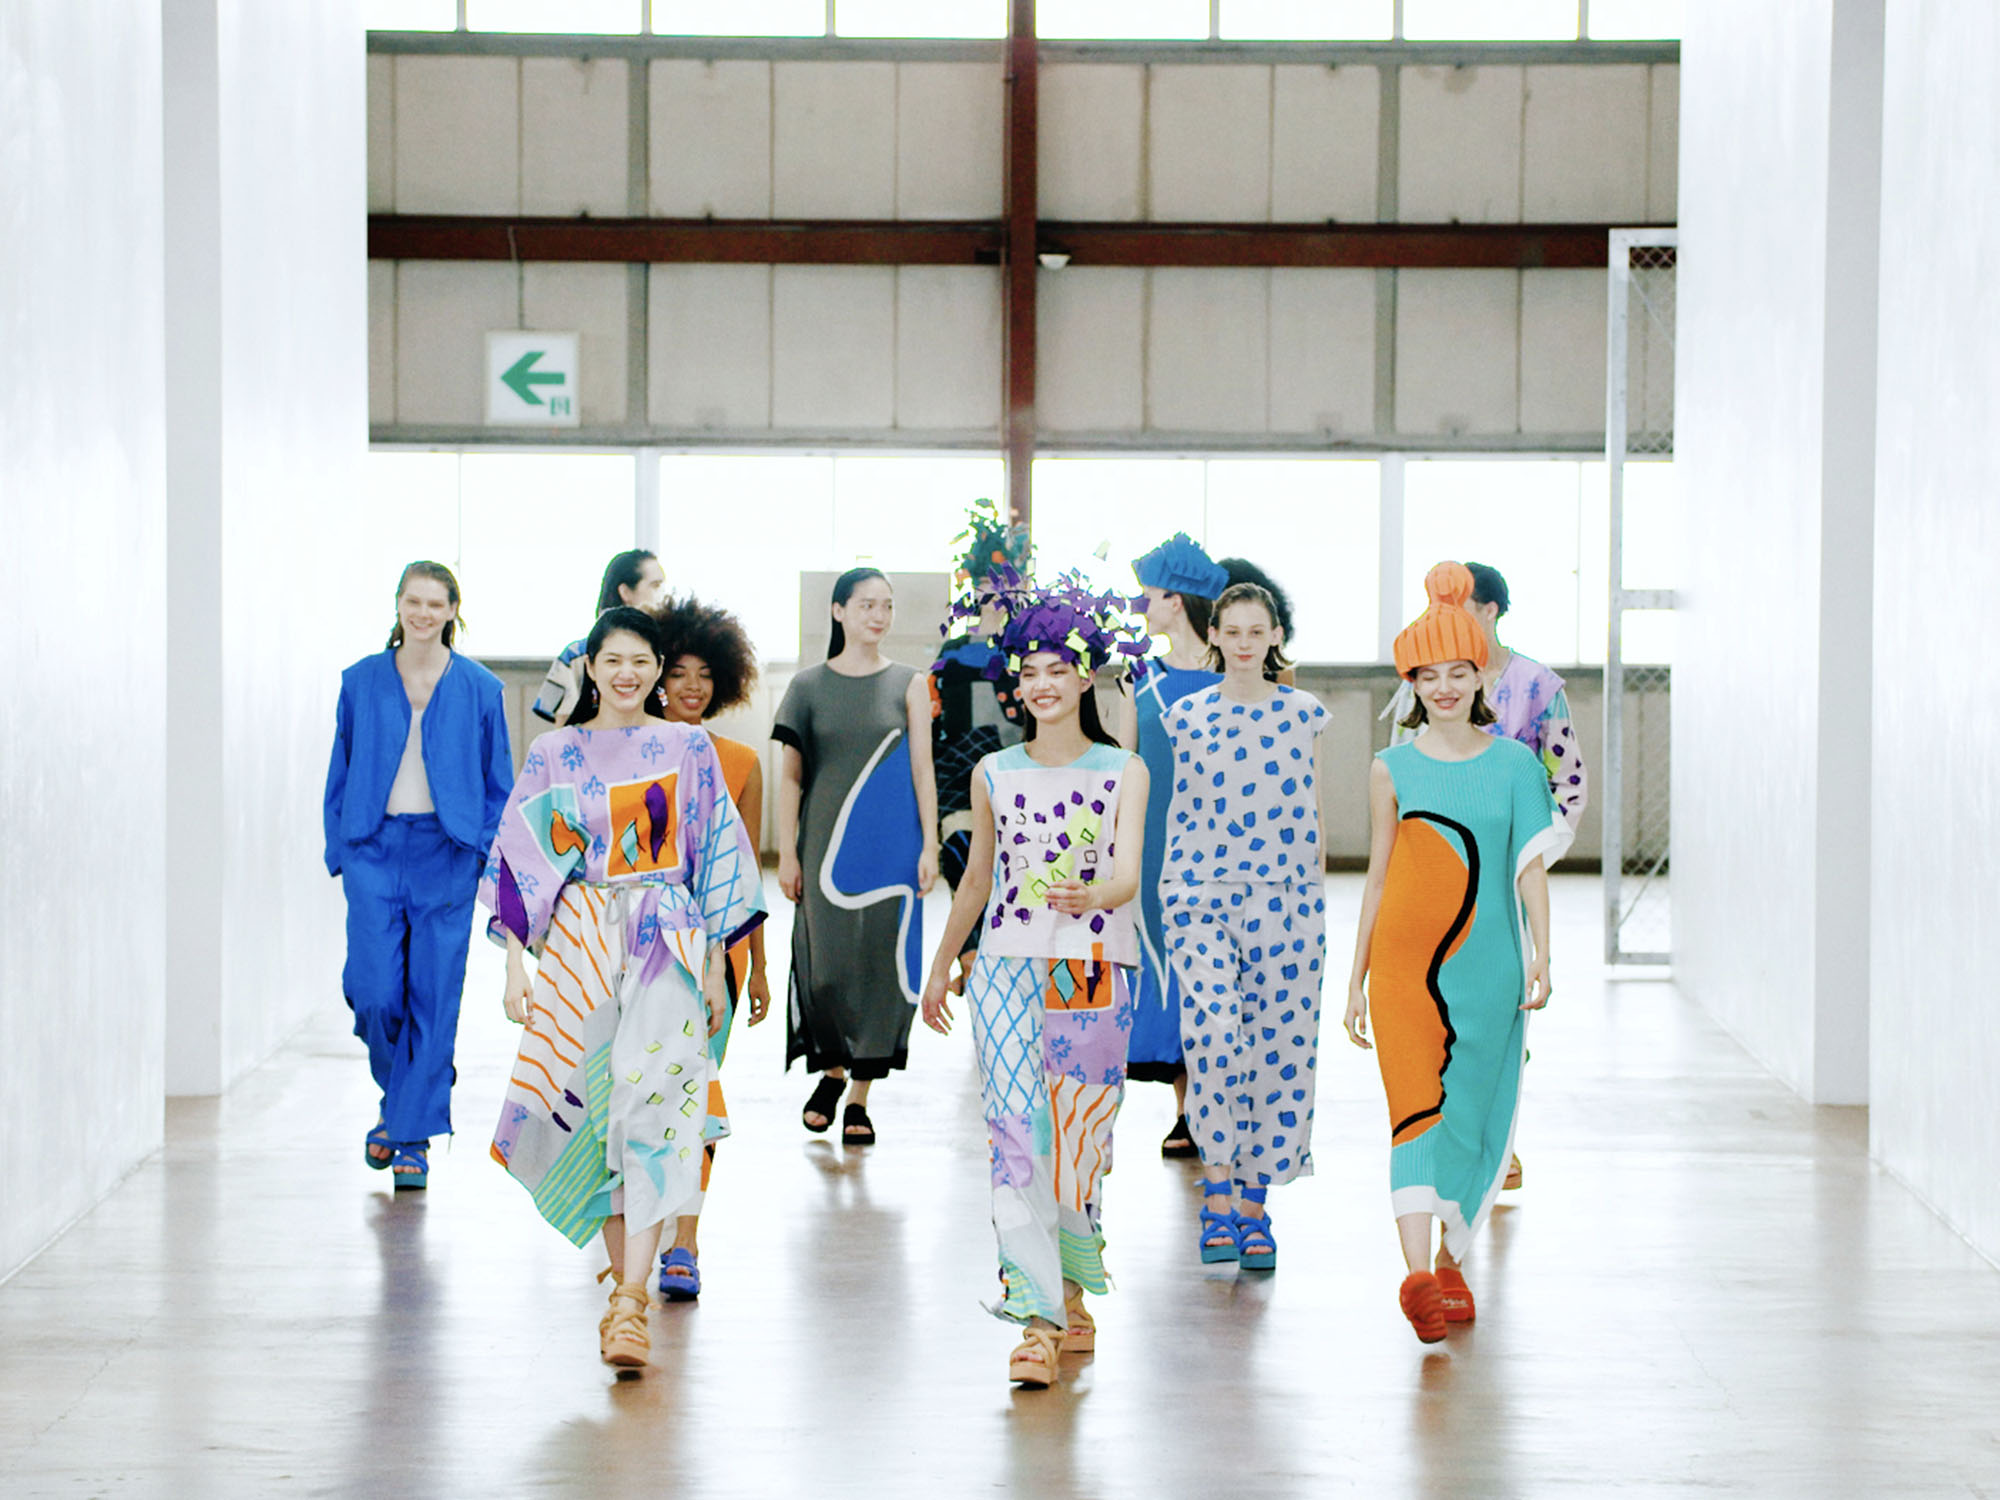 Issey Miyake transforms clothes into stop-motion choreography